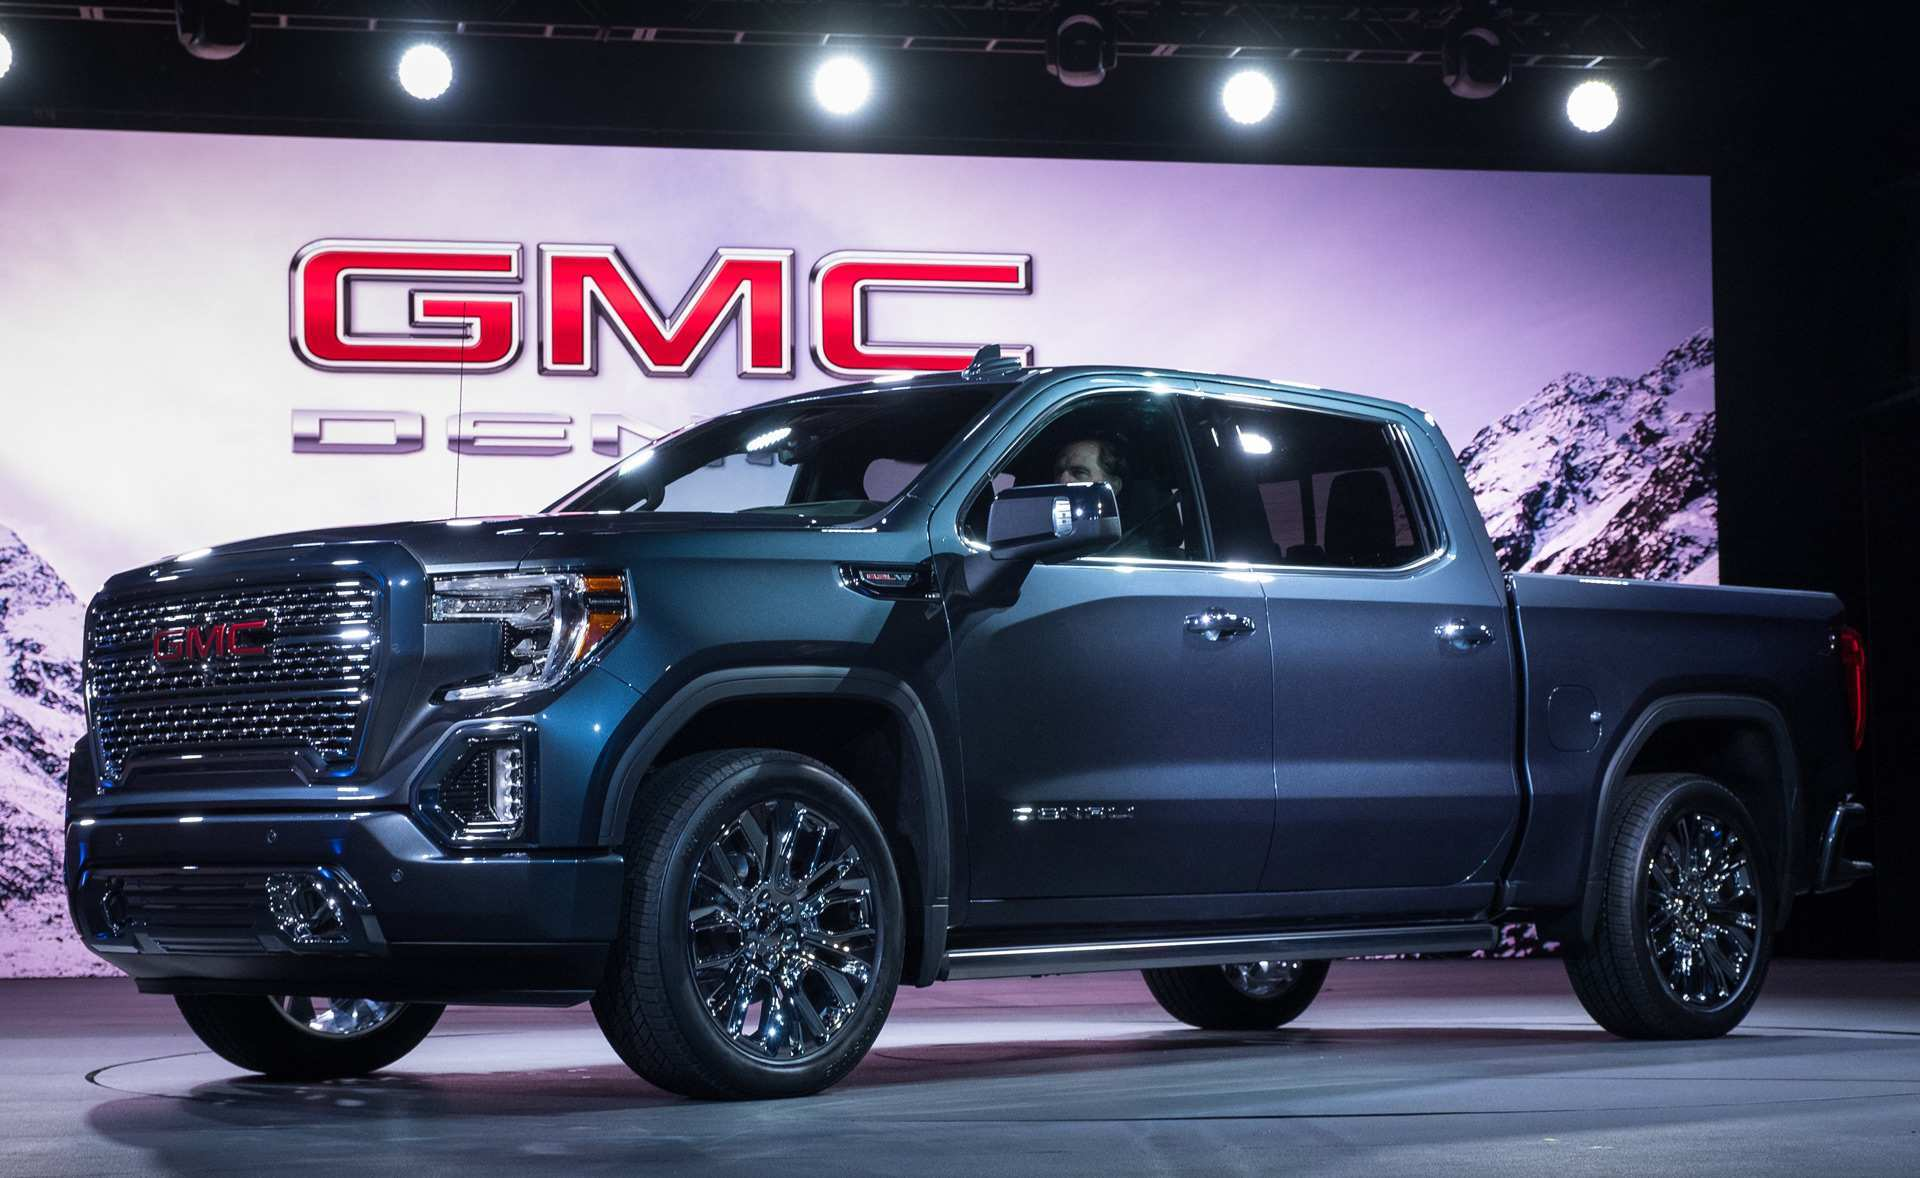 48 The Best 2020 Gmc Sierra 1500 Limited Review And Release Date